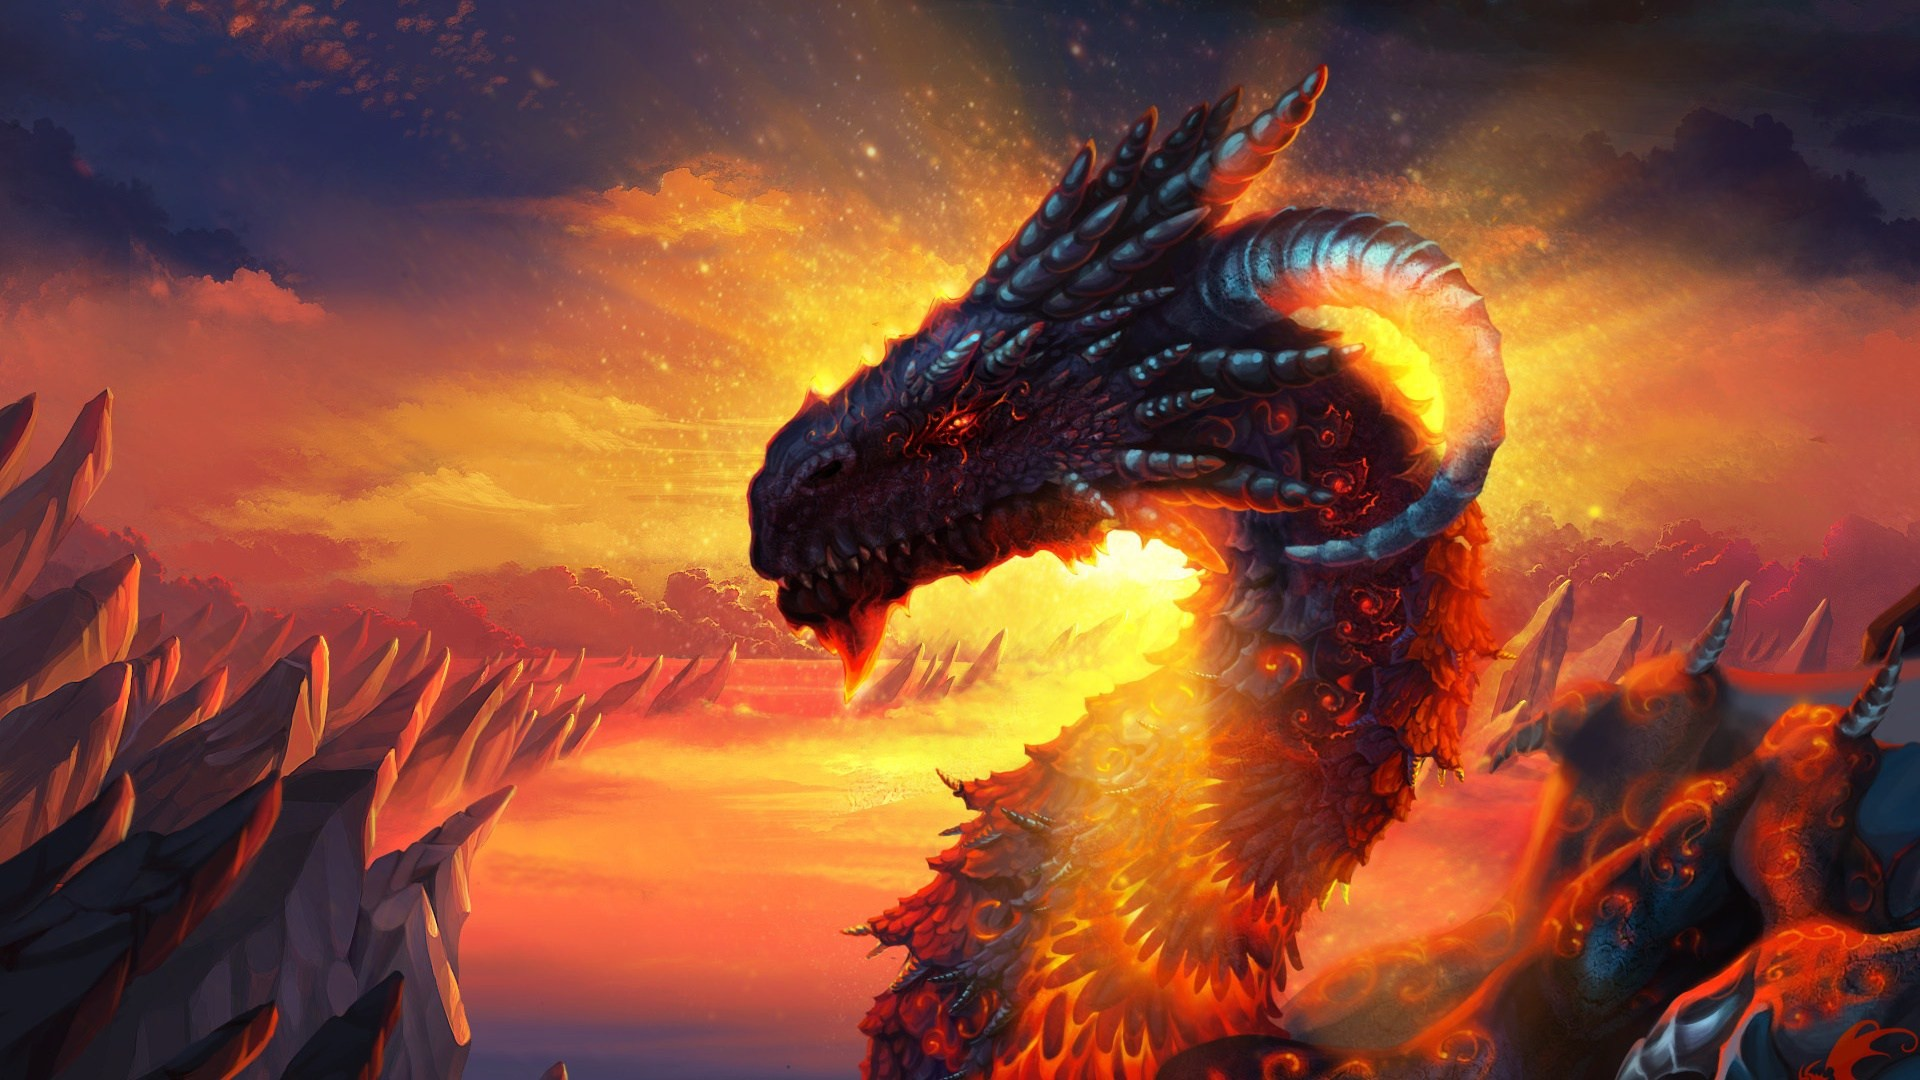 1920x1080 Dragon Wallpapers High Quality For Desktop Wallpaper